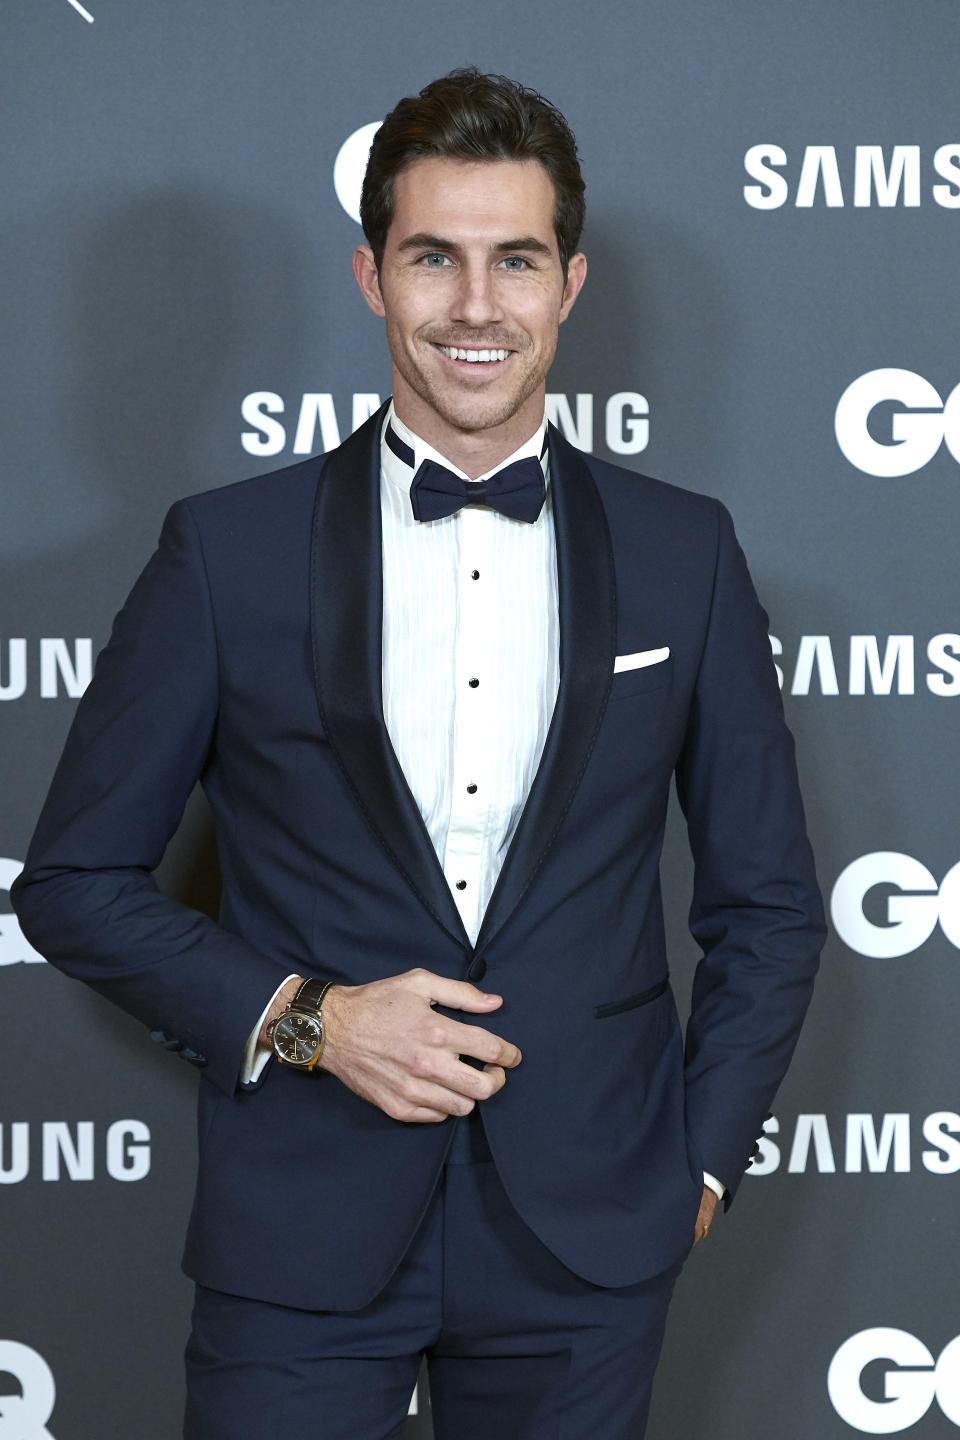 Beltran Lozano attends the GQ Men Of The Year Awards 2019 photocall at The Westin Palace Hotel in Madrid, Spain on Nov 21, 2019 (Photo by Carlos Dafonte/NurPhoto via Getty Images)